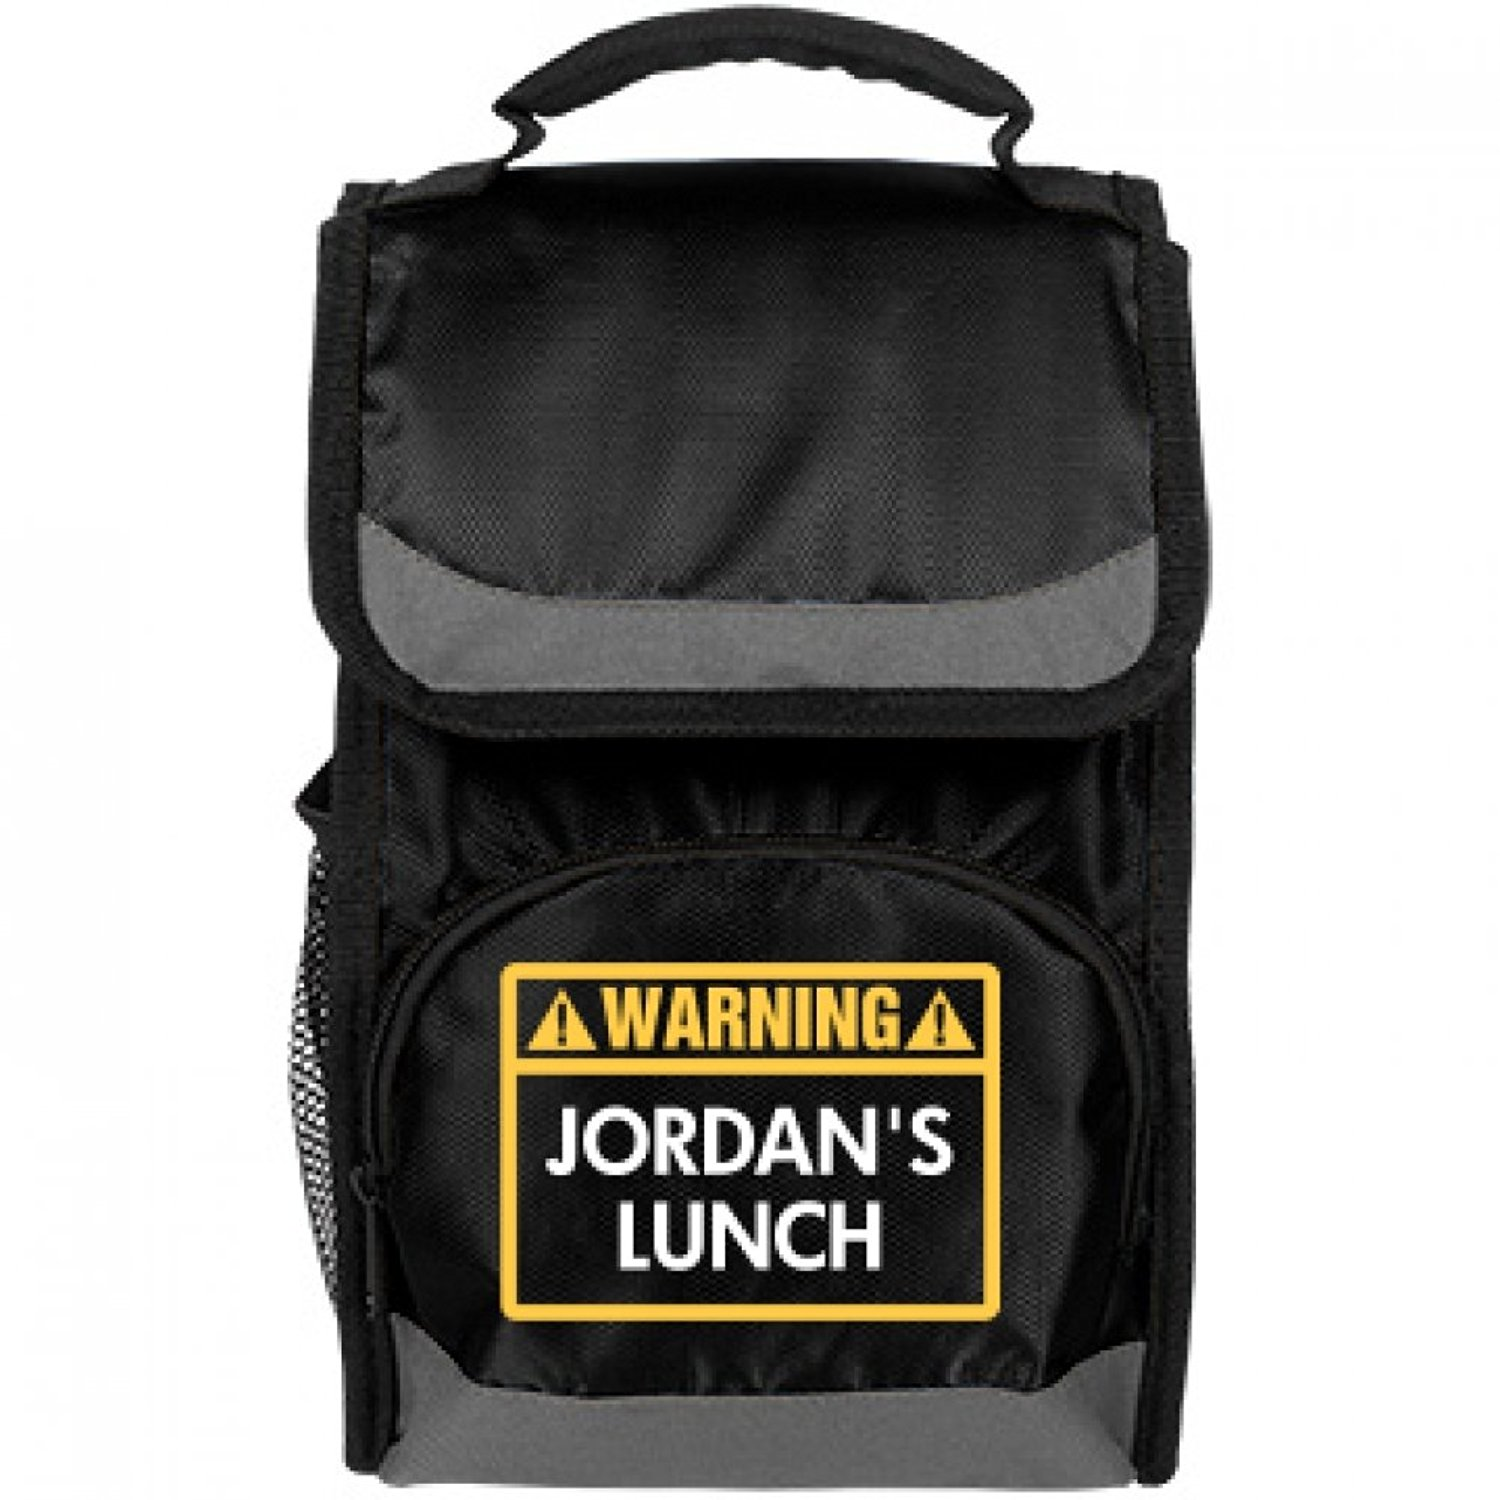 6558513161b2cb Get Quotations · Funny Warning Jordan s Lunch Bag  Port Authority Flap Lunch  Cooler Bag